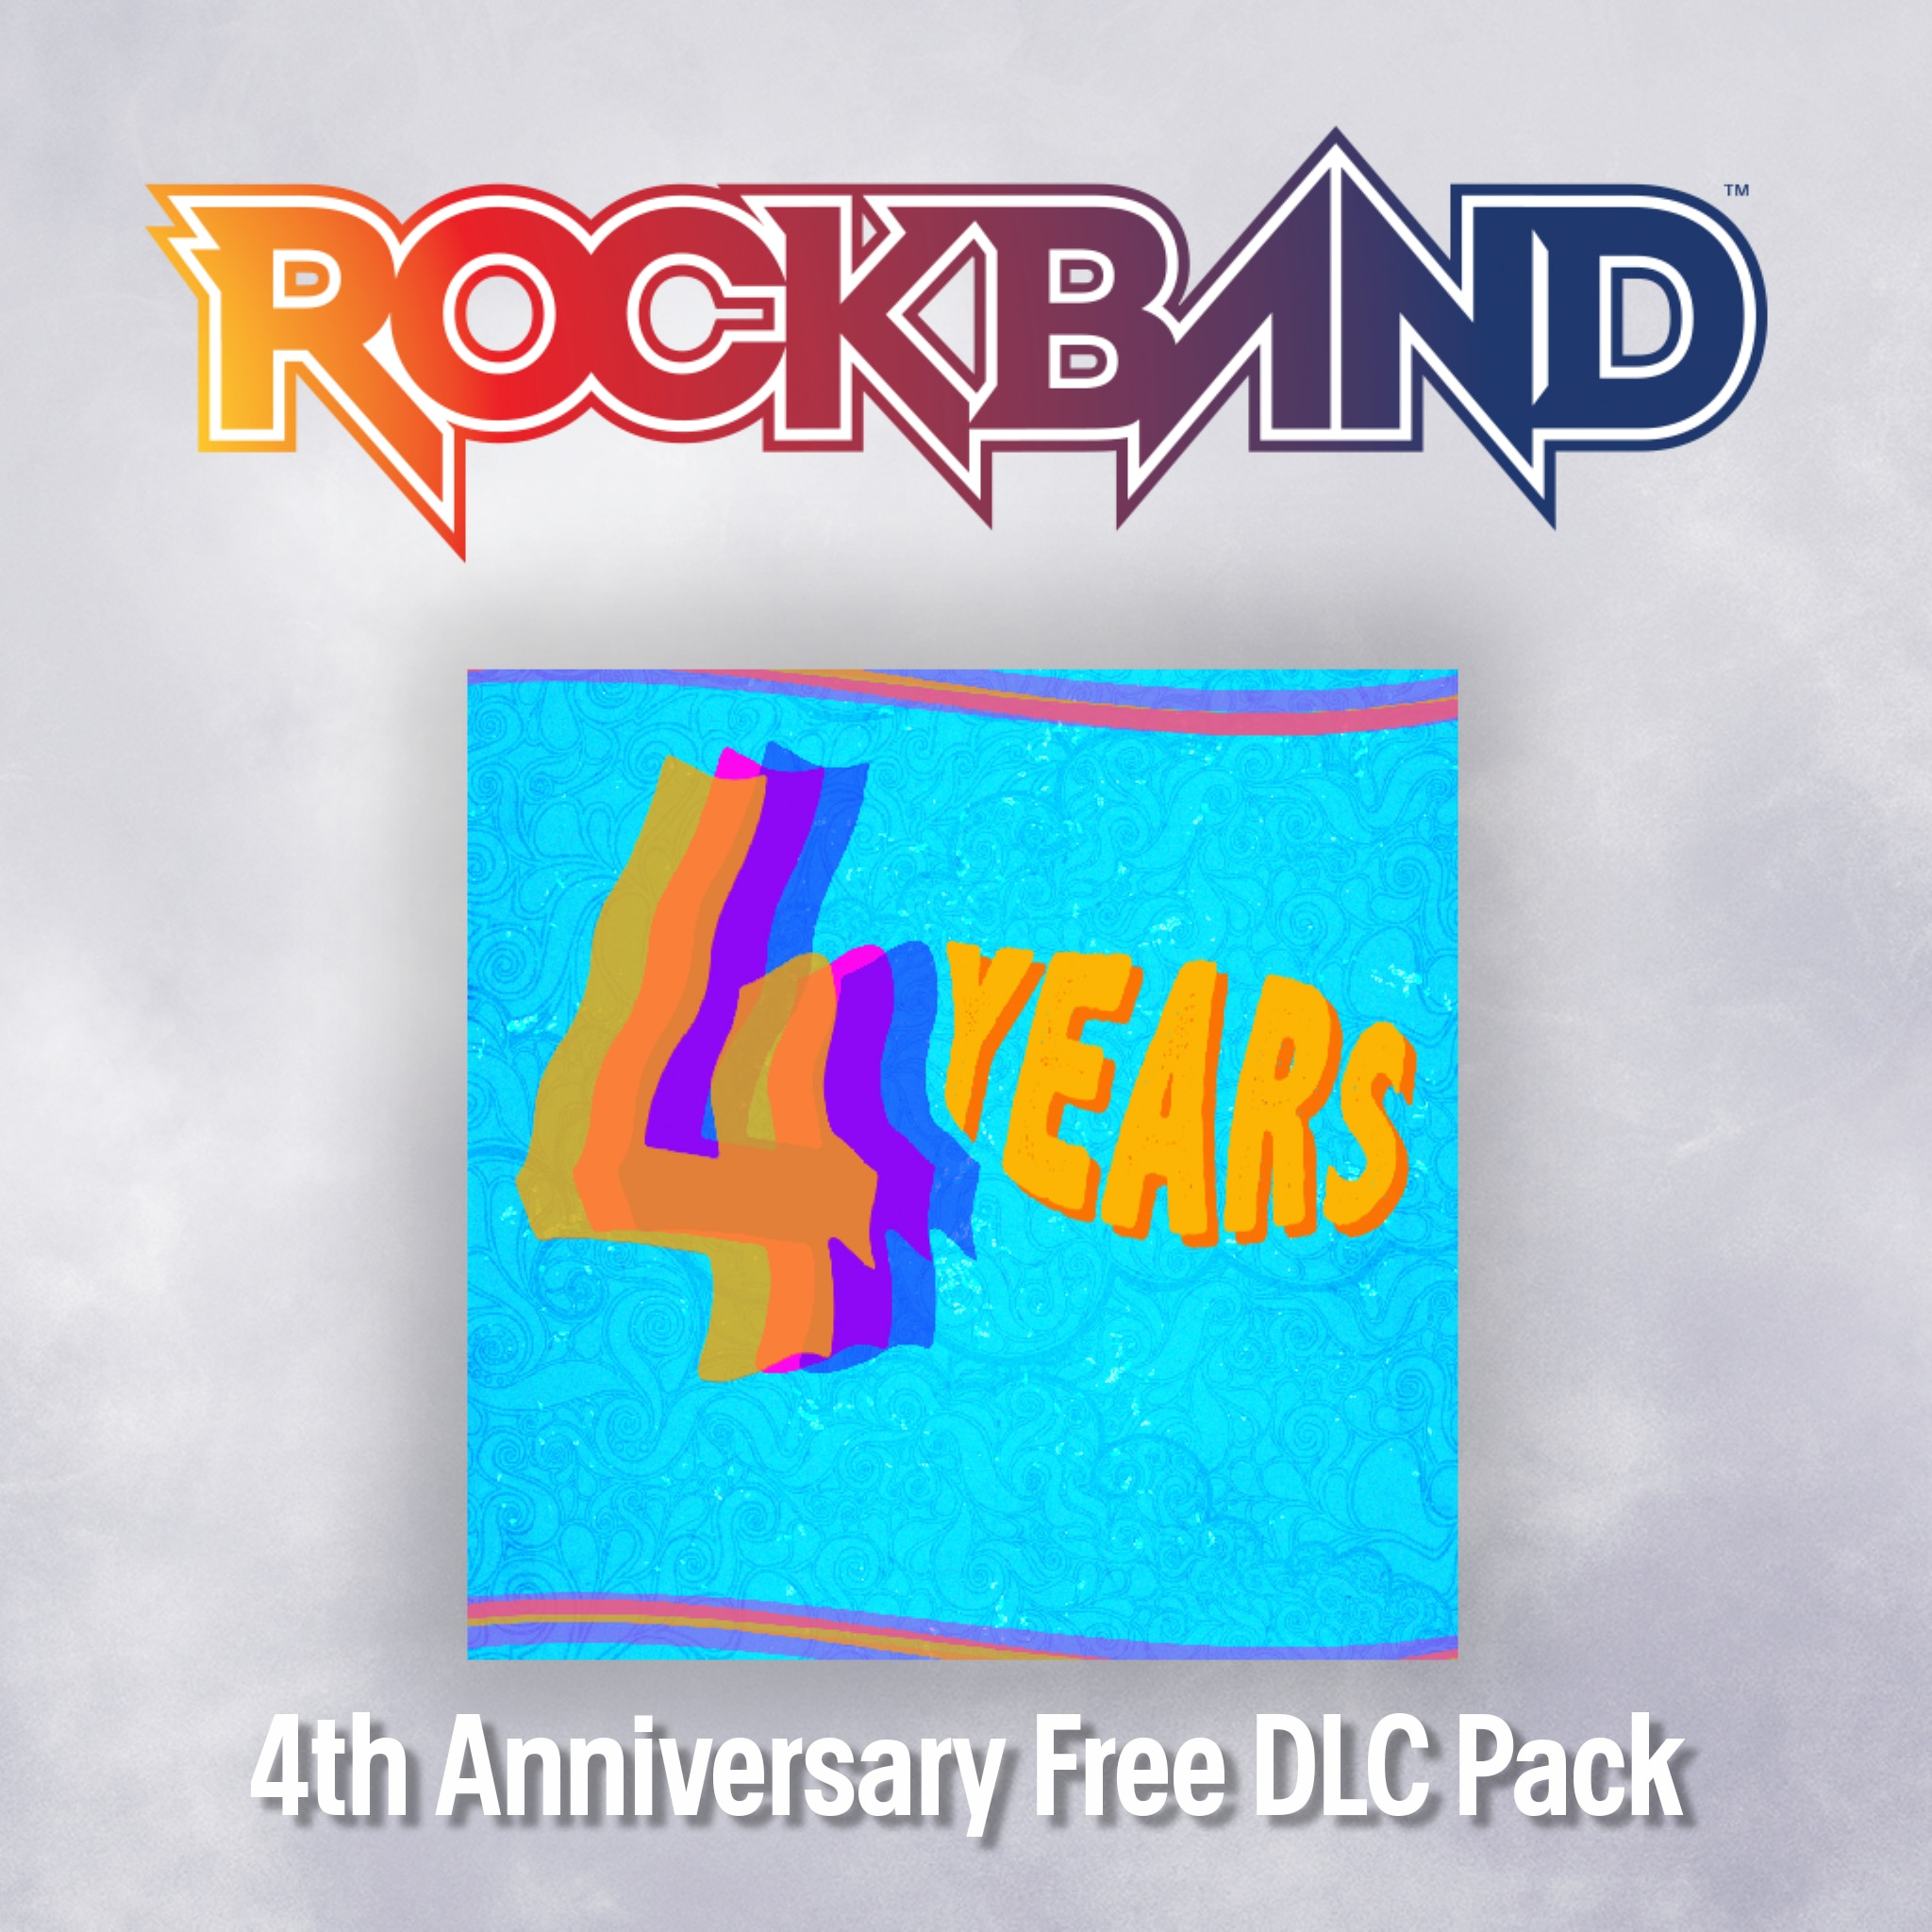 4th Anniversary Free DLC Pack